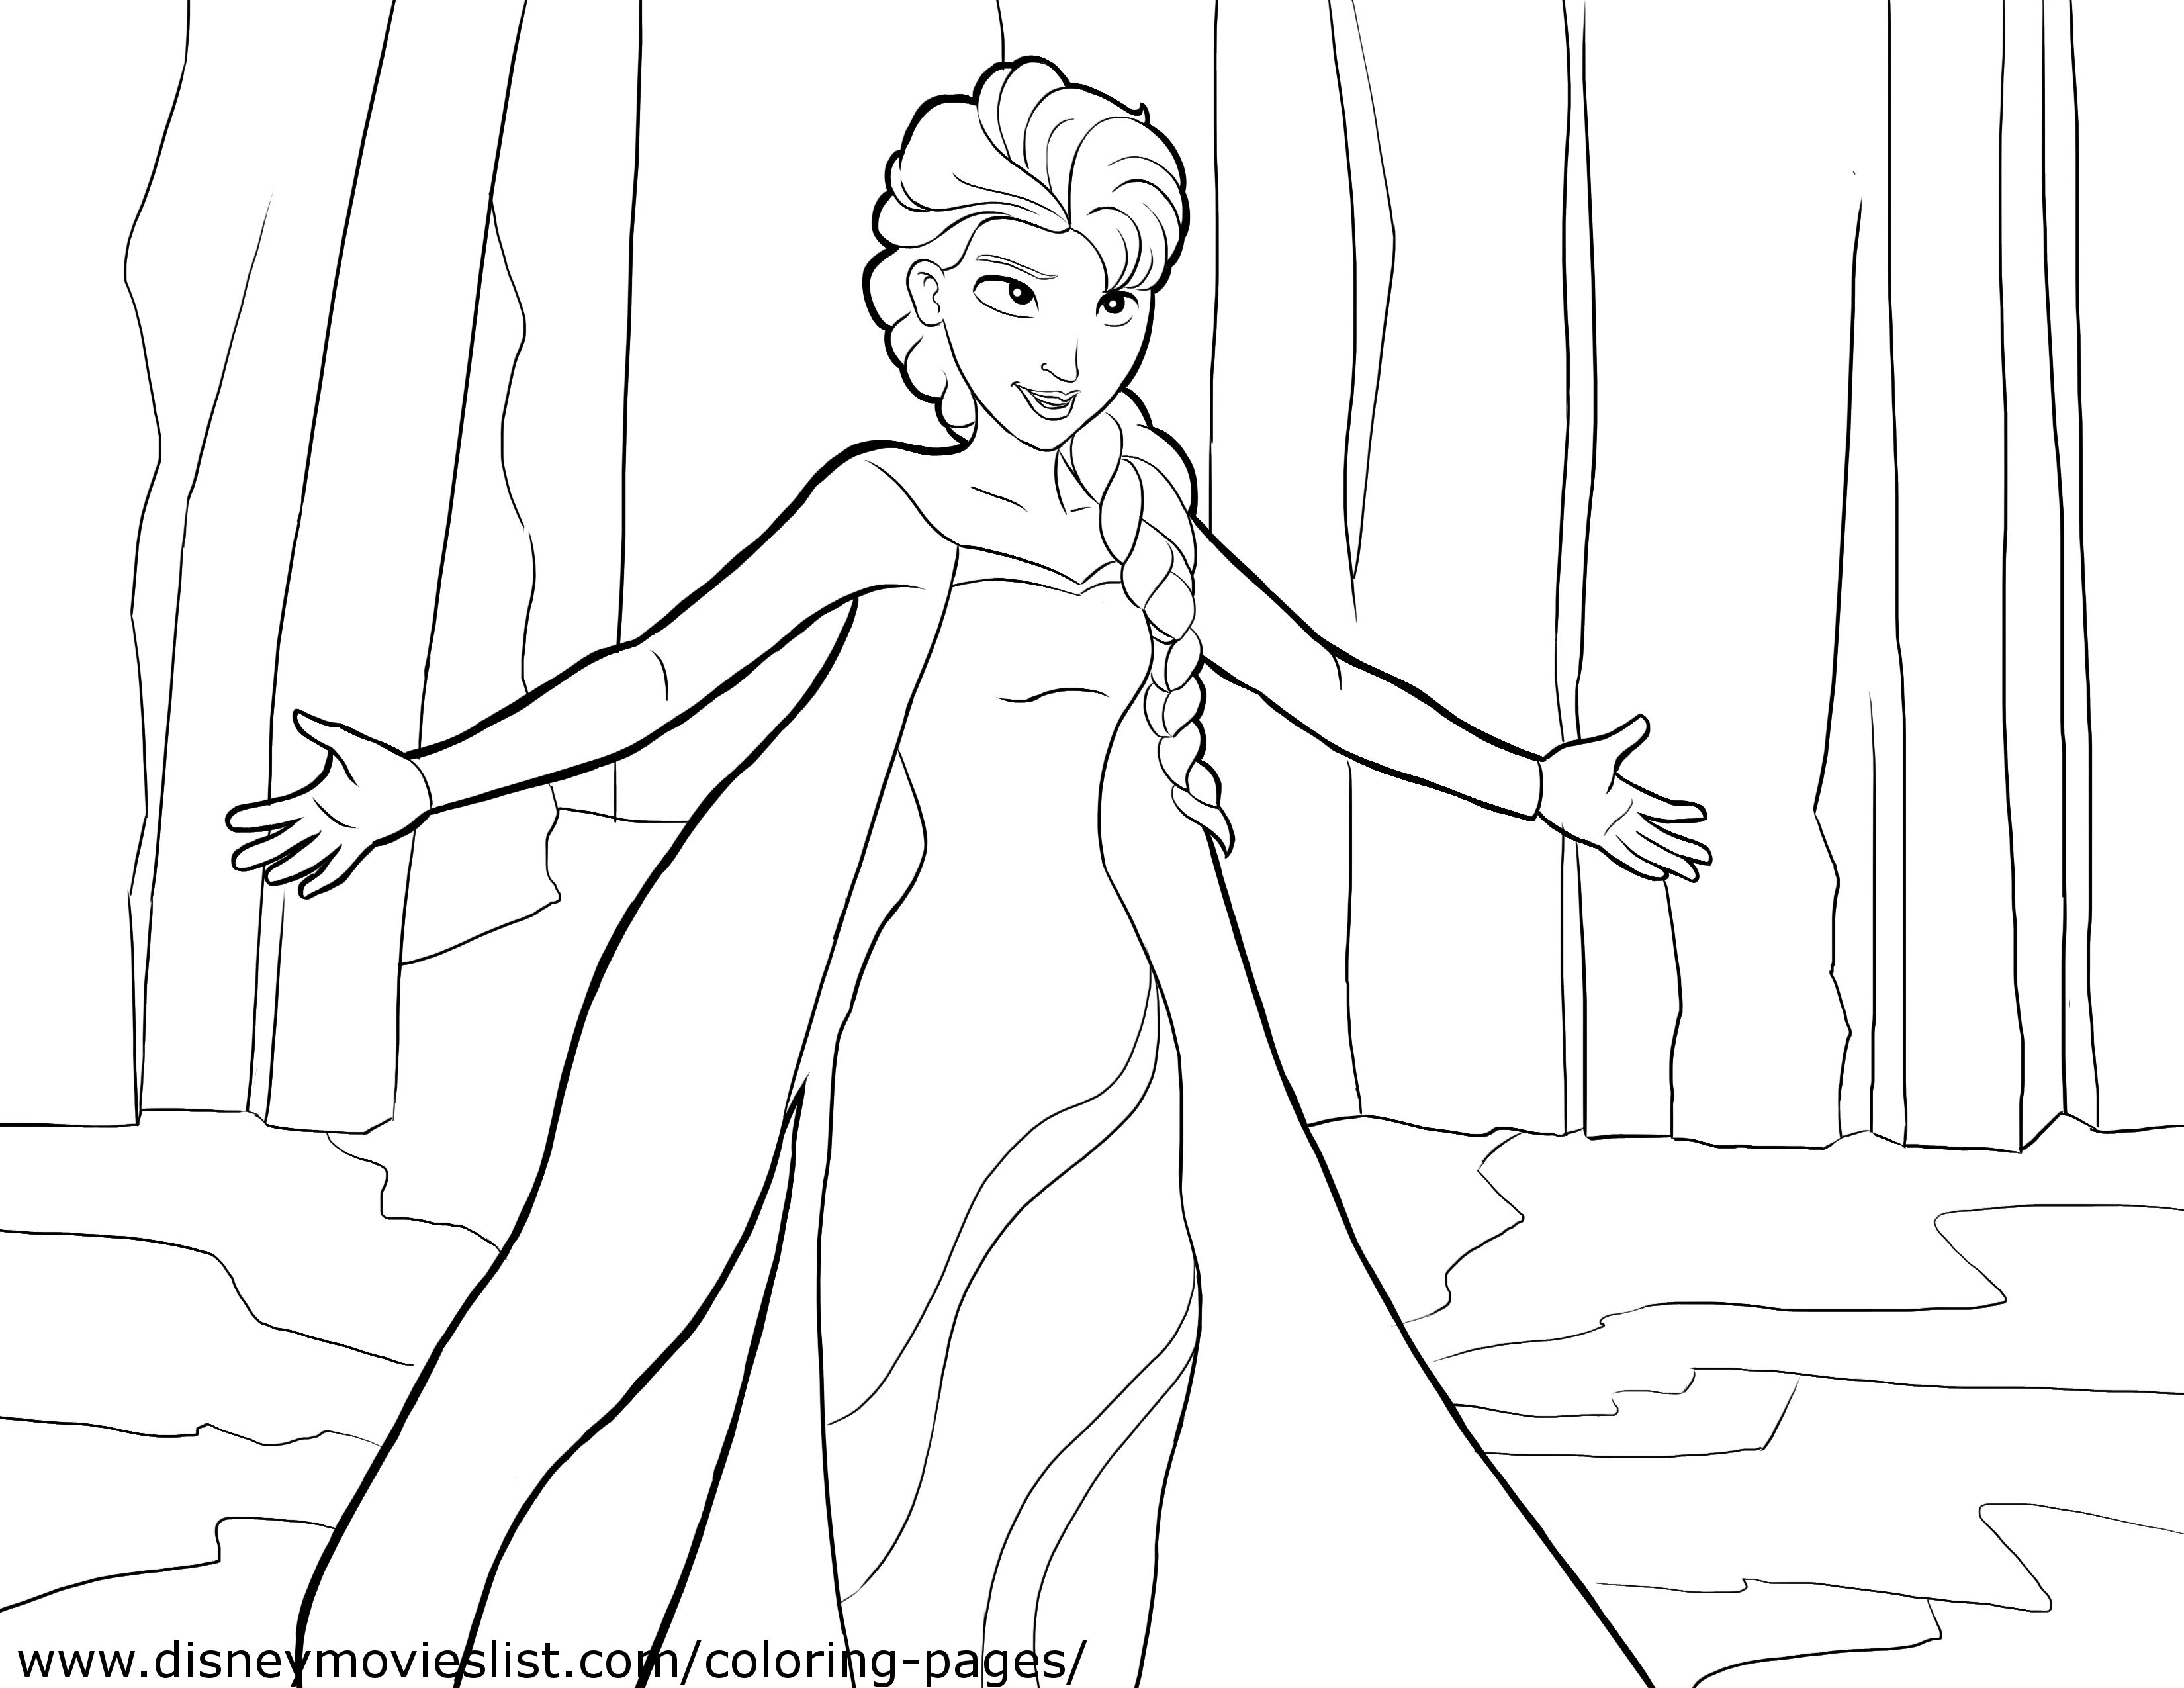 Frozen Coloring Pages 2018- Z31 Coloring Page